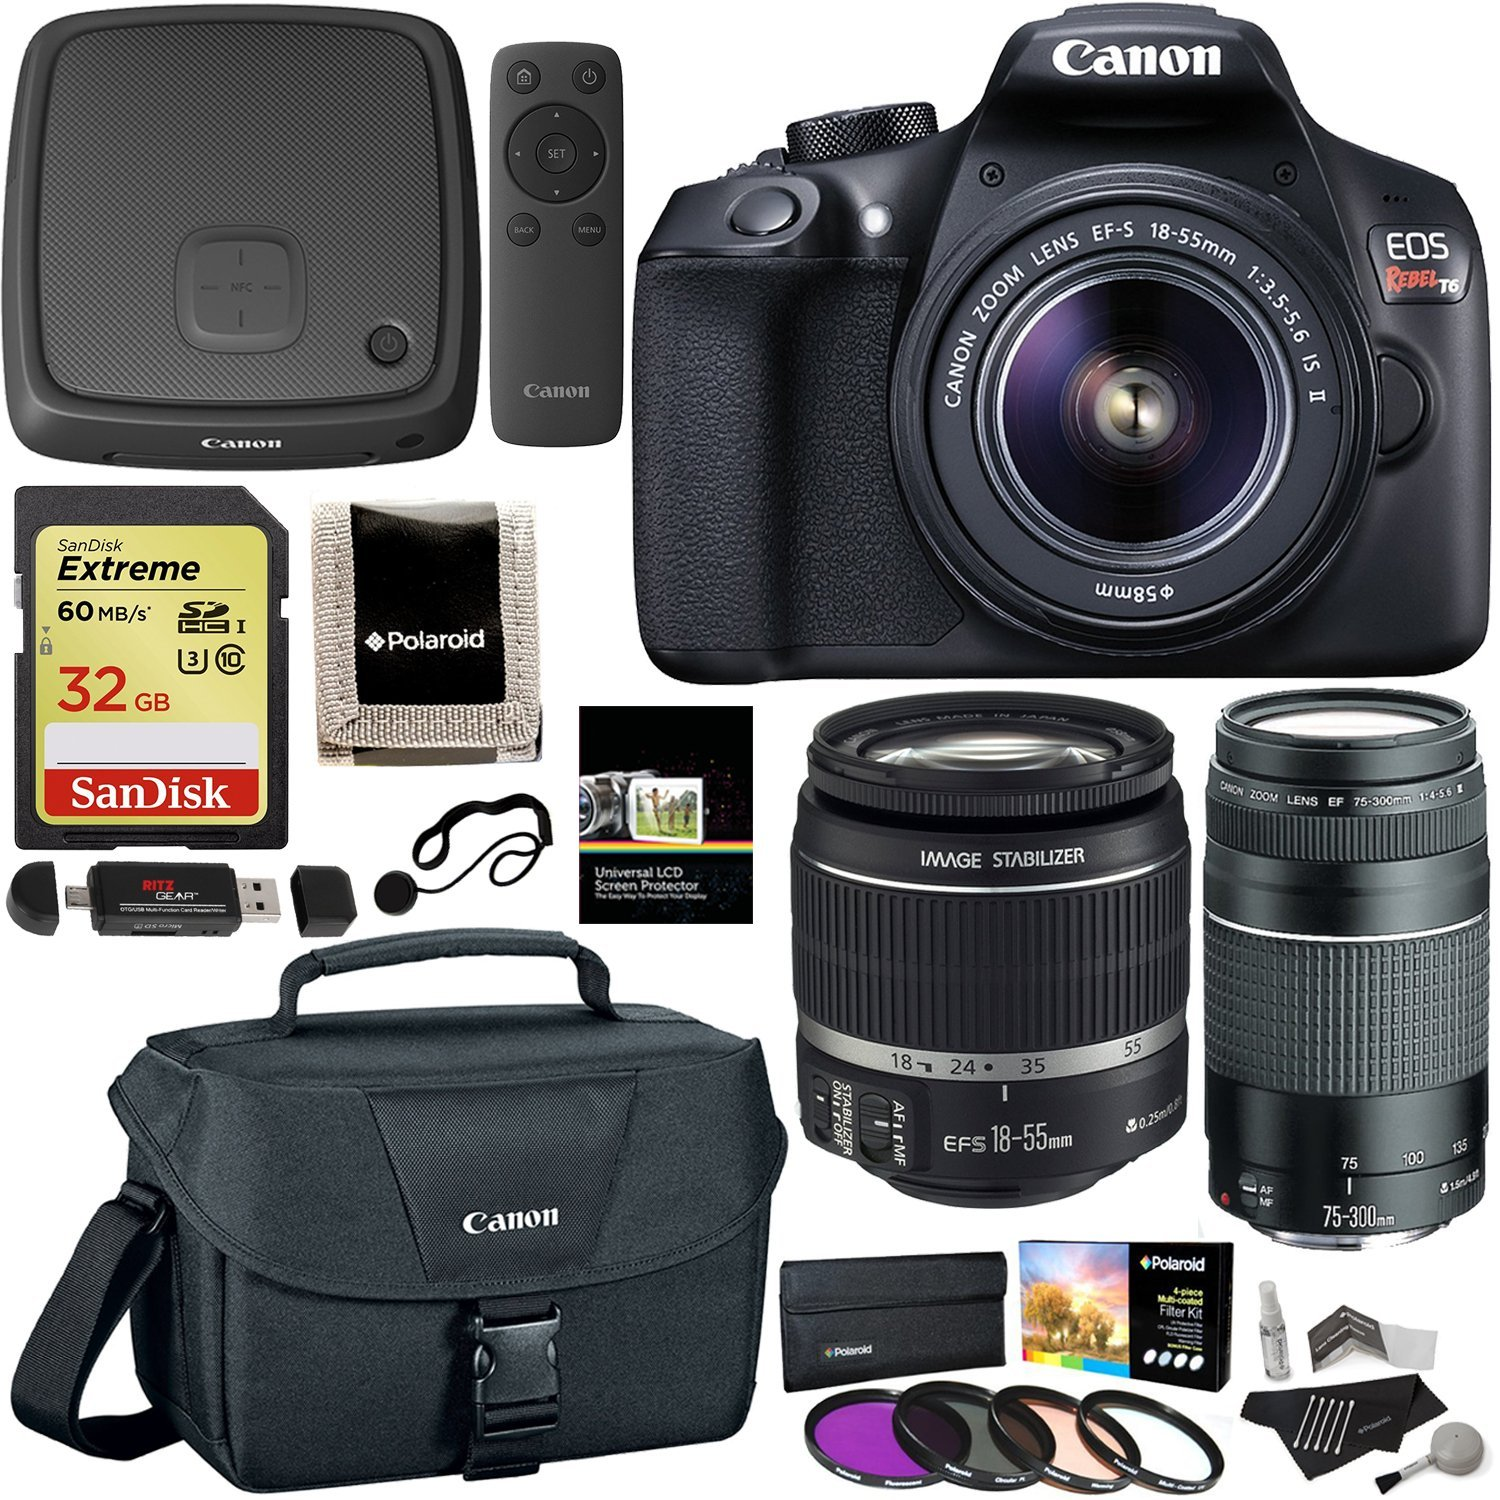 Amazon.com : Canon EOS Rebel T6 Digital SLR Camera Kit with EF-S 18-55mm and EF 75-300mm Zoom Lenses + Polaroid .43x Super Wide Angle & 2.2X HD Telephoto Lens + Polaroid Tripods + Memory Cards + Accessory Bundle